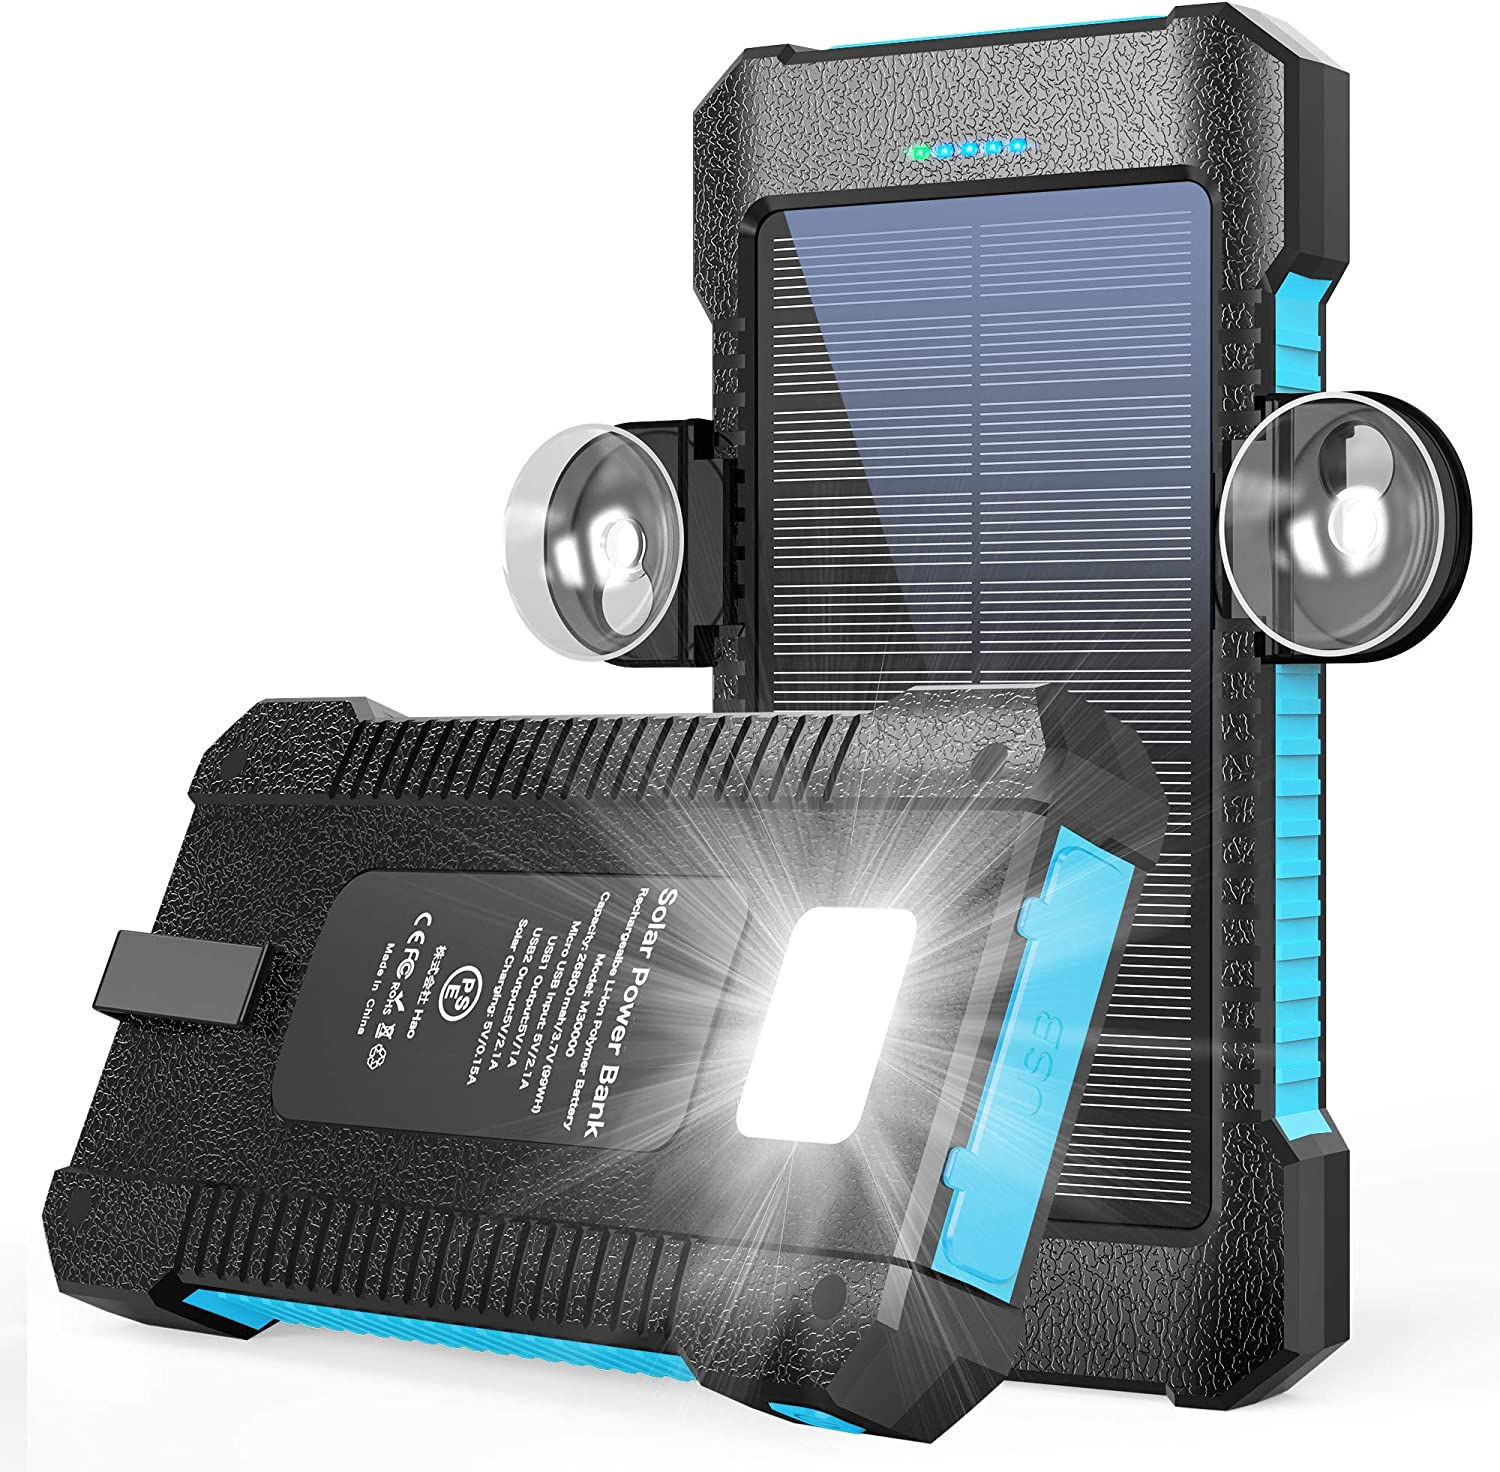 Solar Charger,Solar Power Bank 26800mAh,Solar Phone Charger with Car Blue